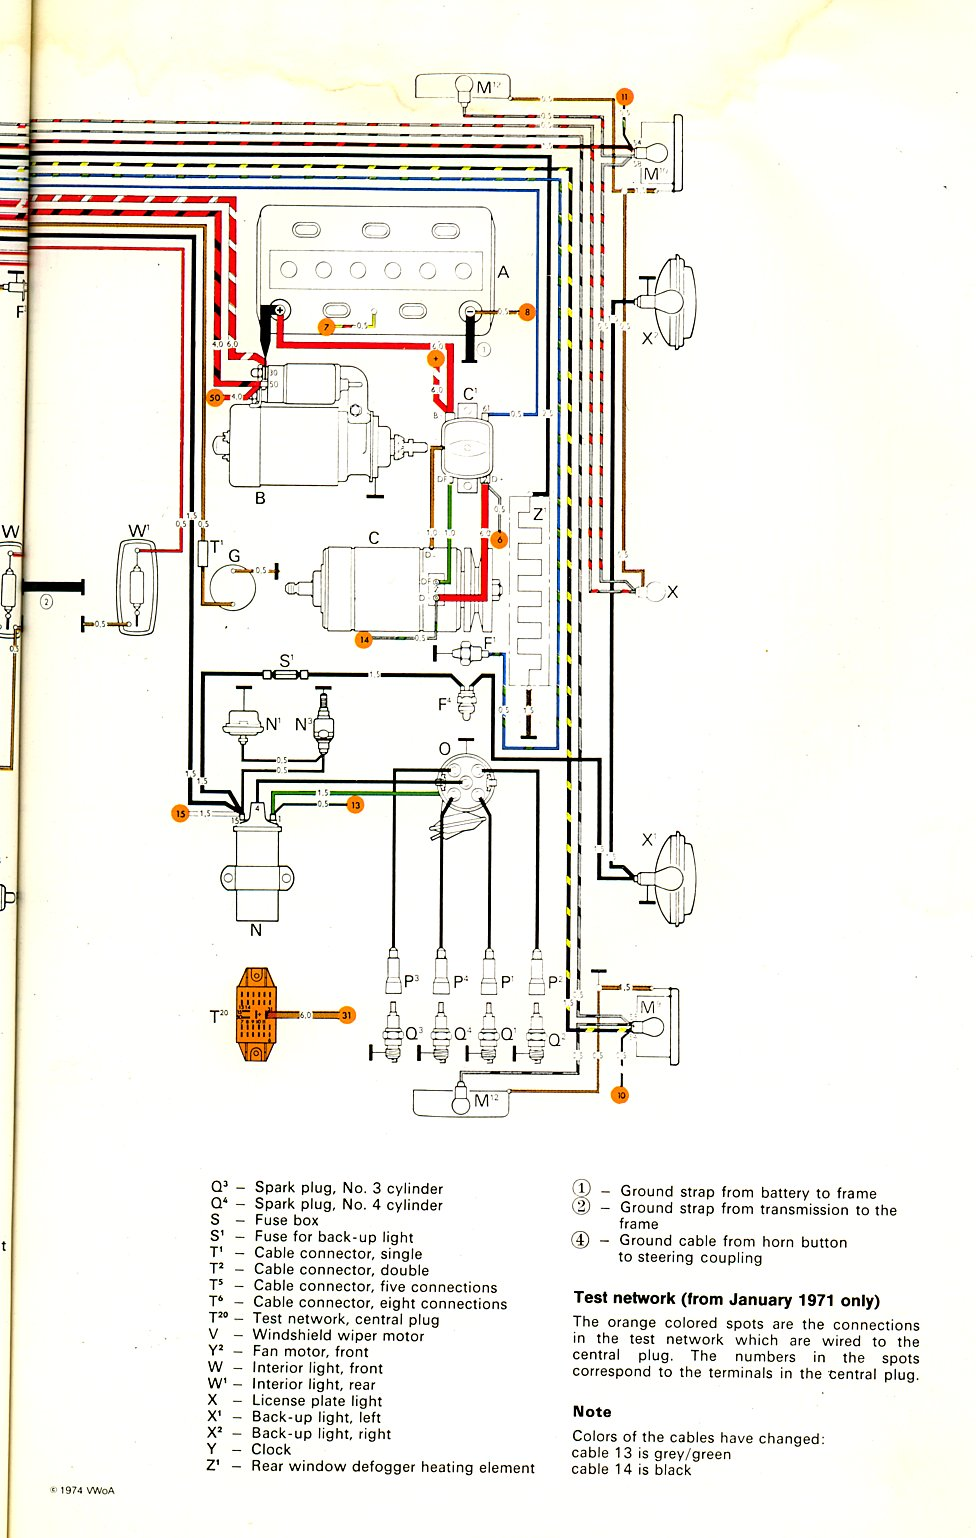 Attic Room 2 Wiring Diagram 1980 Corvette Blower Motor Library